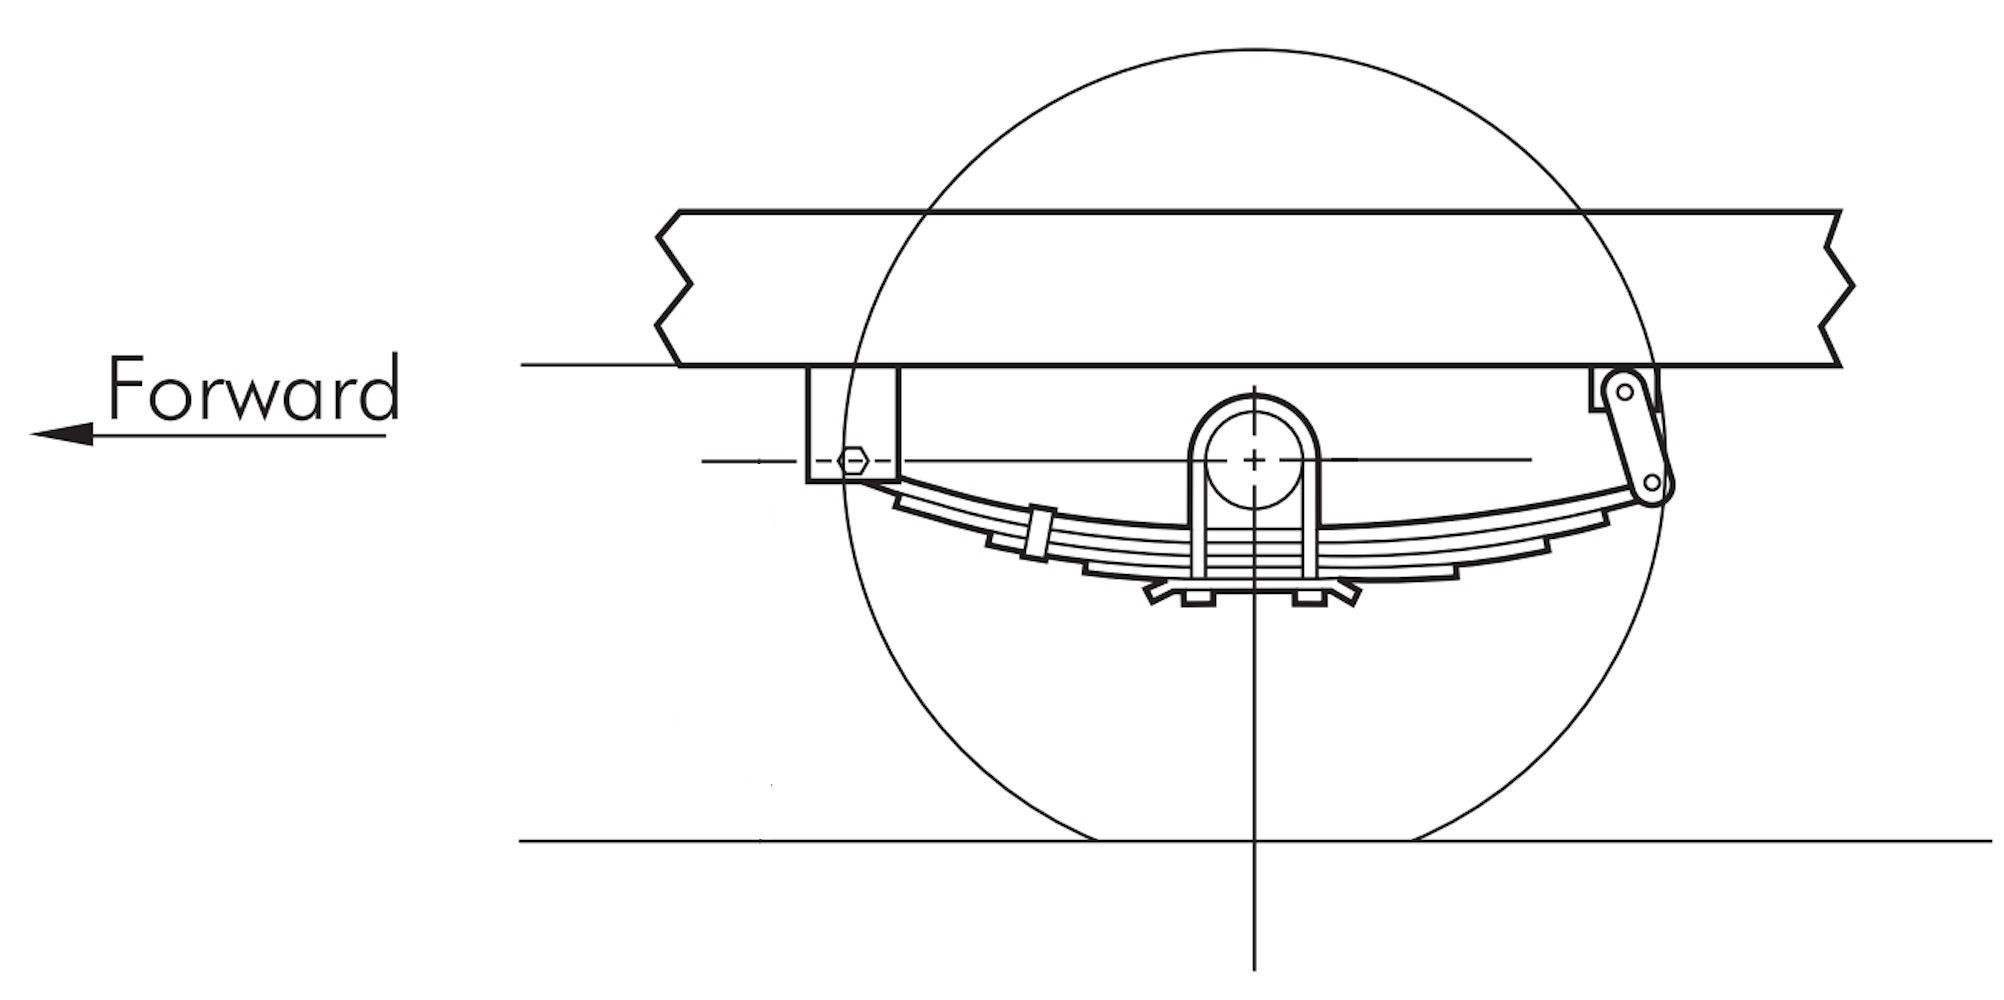 Leaf Spring assembly Diagram 25 1 4 Inch Double Eye 4 Leaf Spring 1750 Pound Capacity Of Leaf Spring assembly Diagram